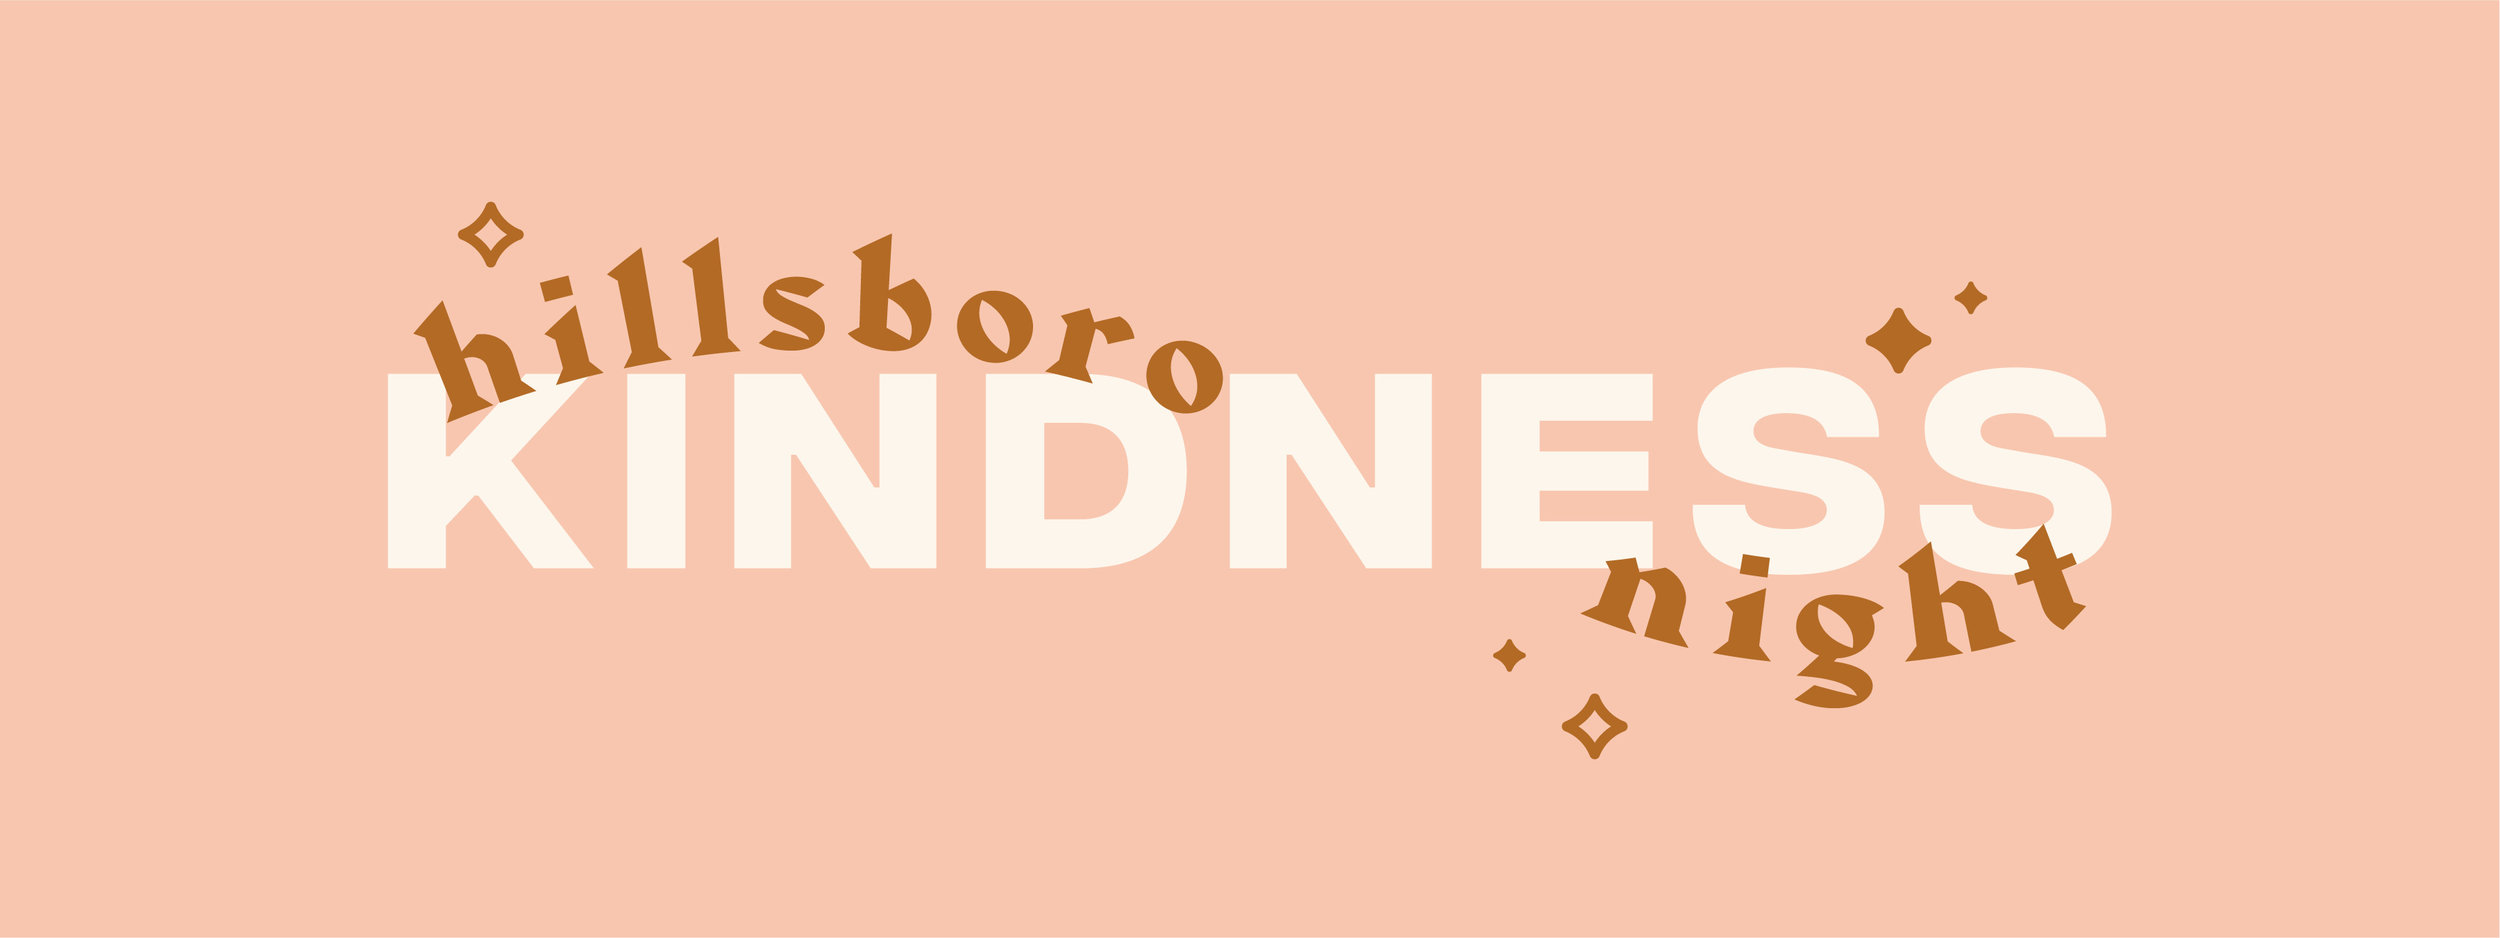 Kindness Night_Banner 2.jpg